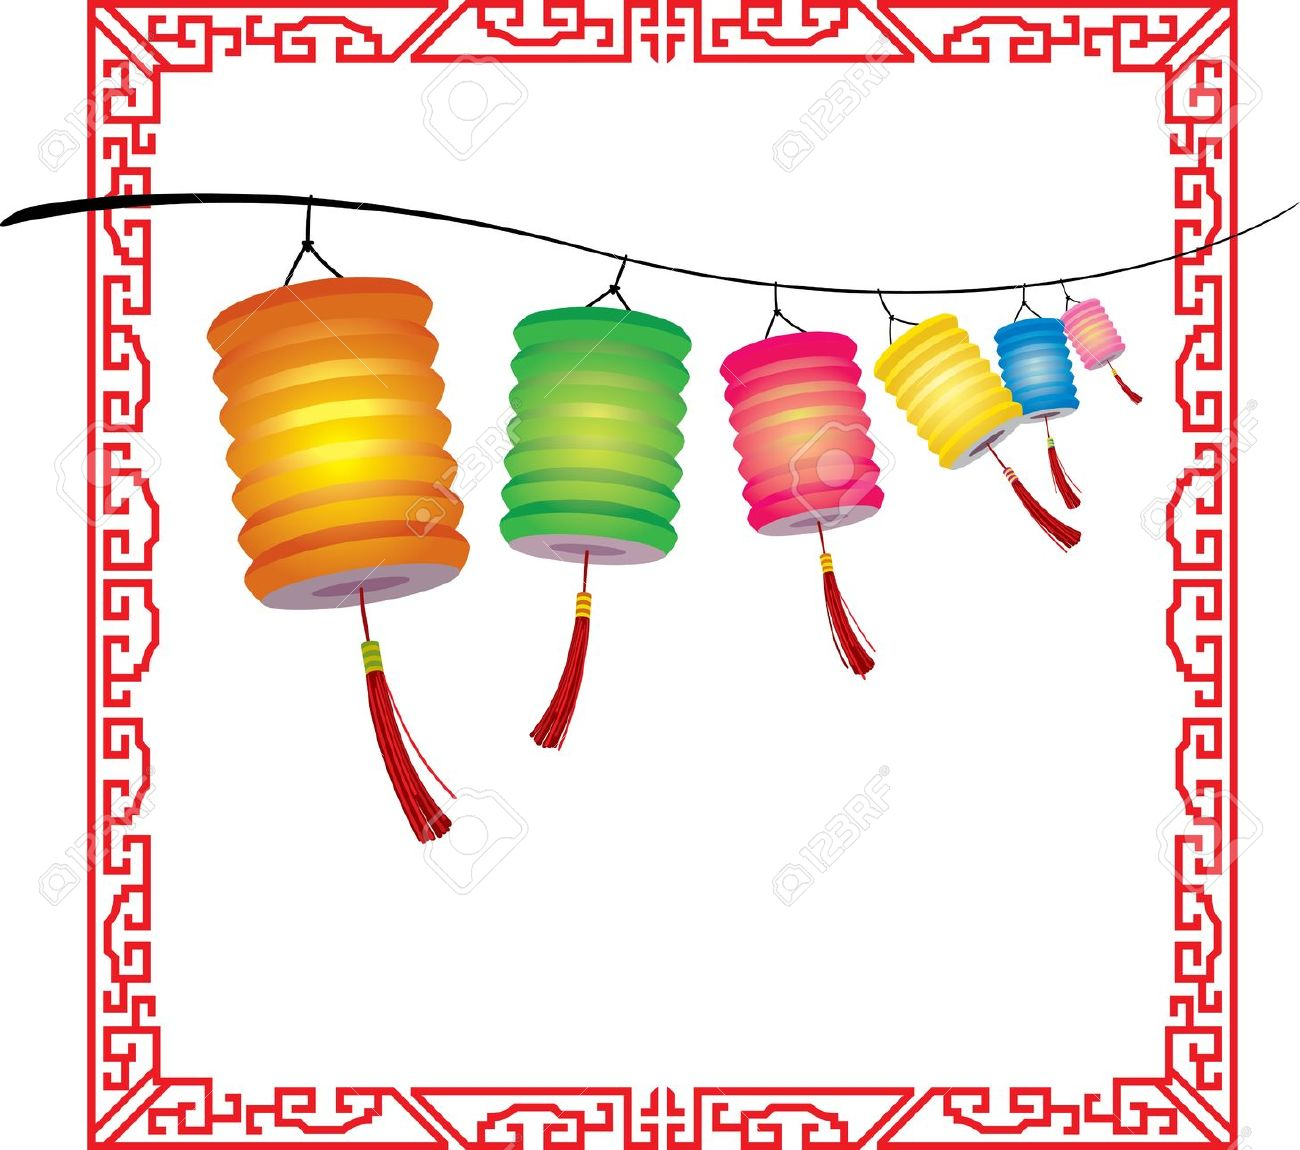 Chinese Festival Lantern Cliparts.